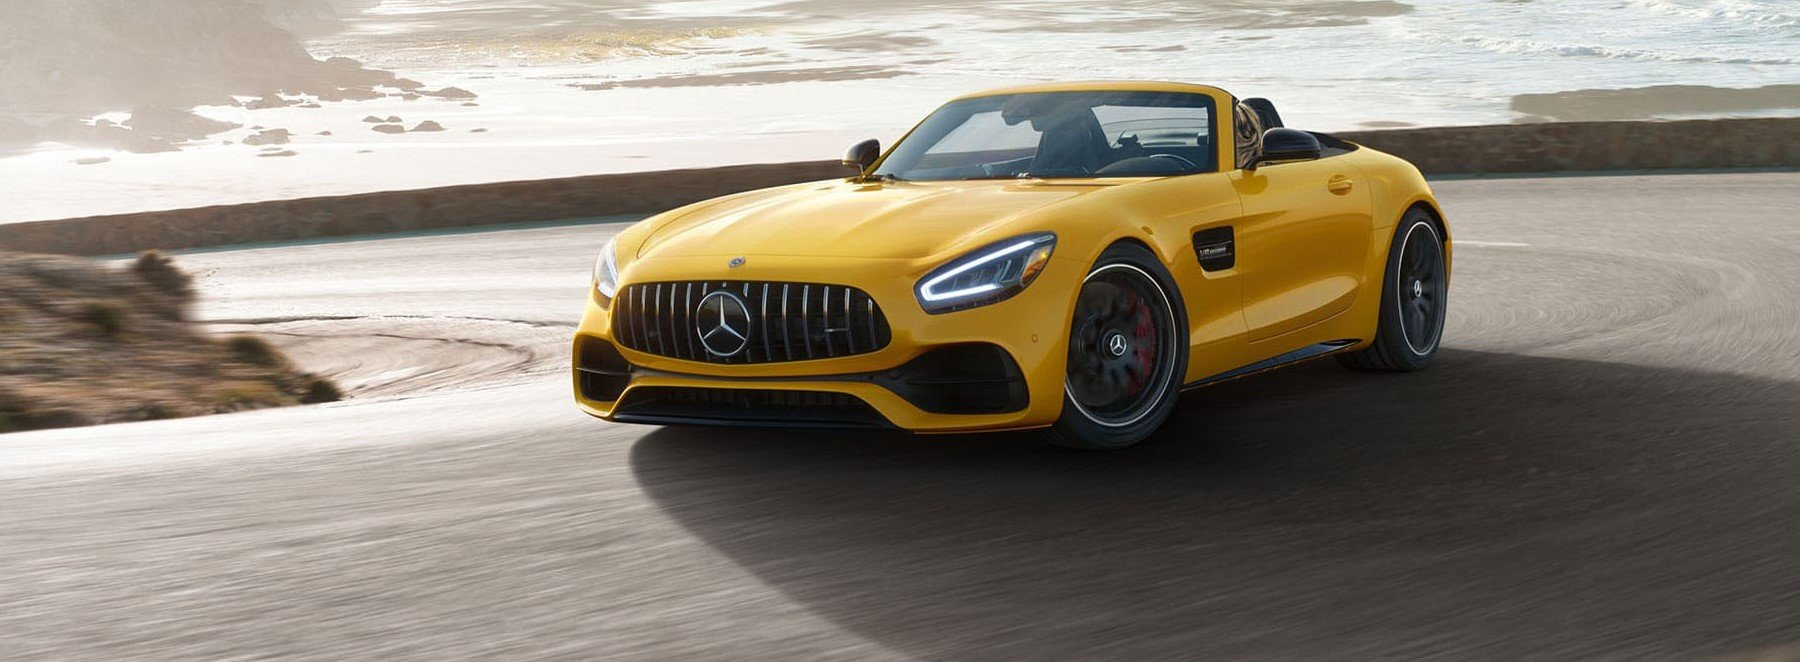 Mercedes Benz Amg Gt Lease Finance Cost Minnetonka Mn